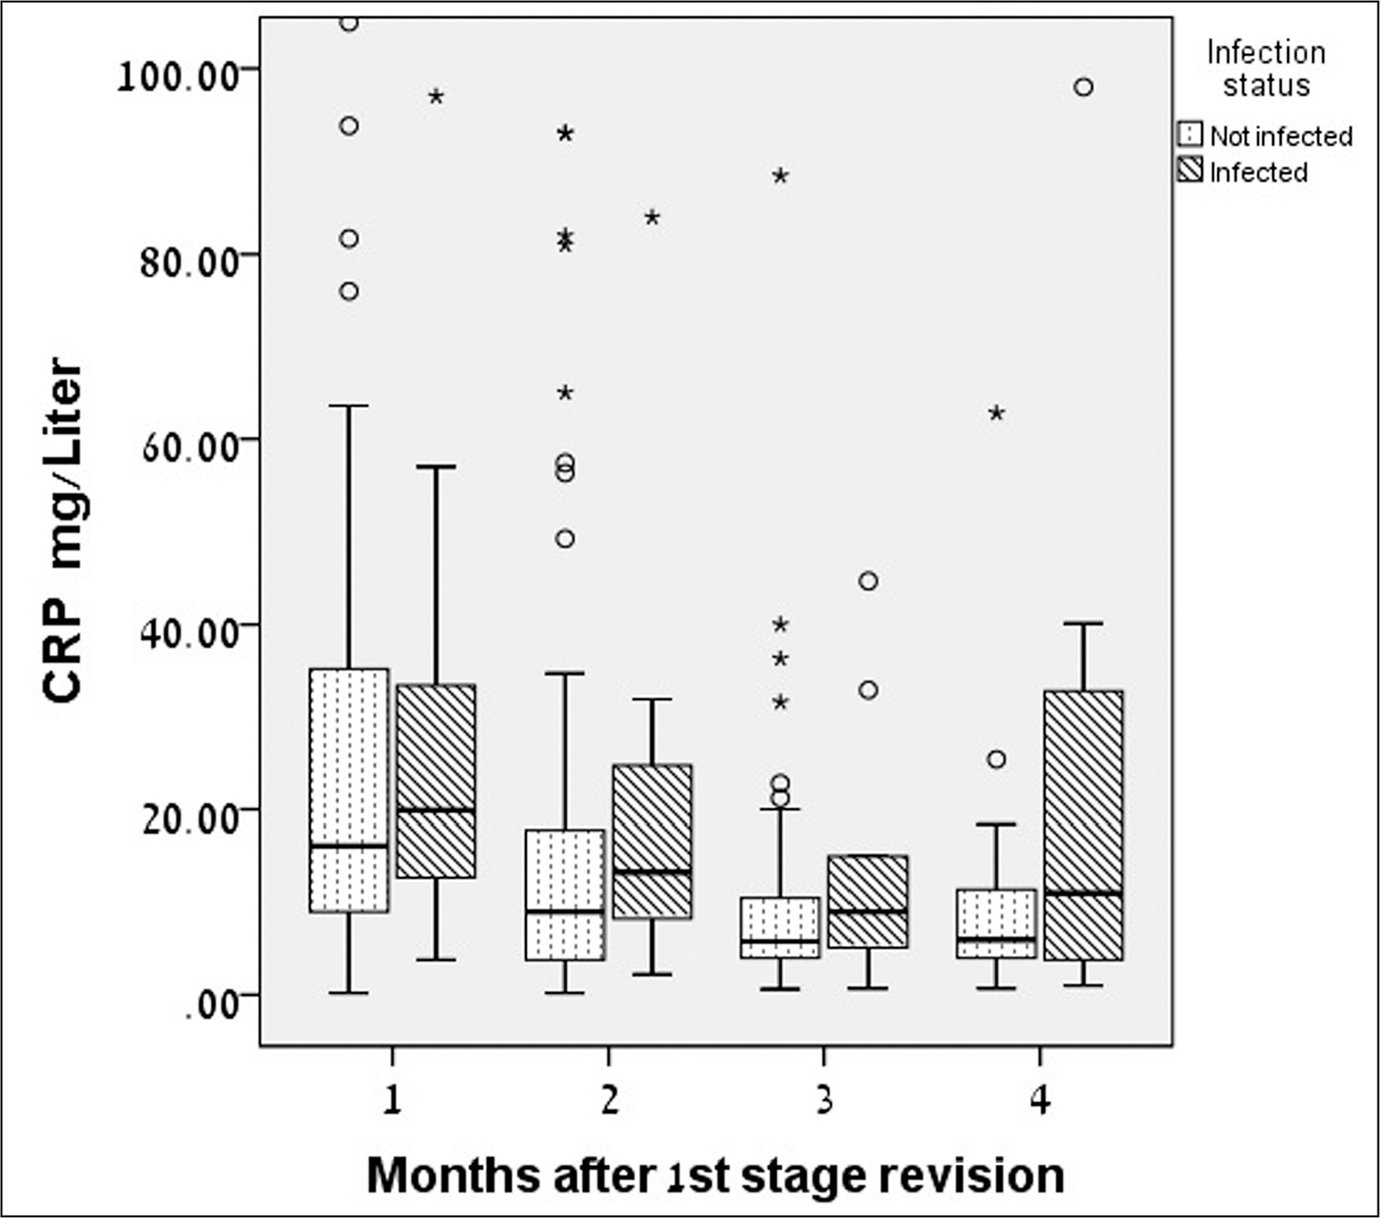 Boxplots of C-reactive protein (CRP) values 1, 2, 3, and 4 months after resection arthroplasty prior to reimplantation. The boxes represent first and third quartiles of the values. The middle line represents median value. The whiskers represent highest value up to 1.5 of the interquartile range.